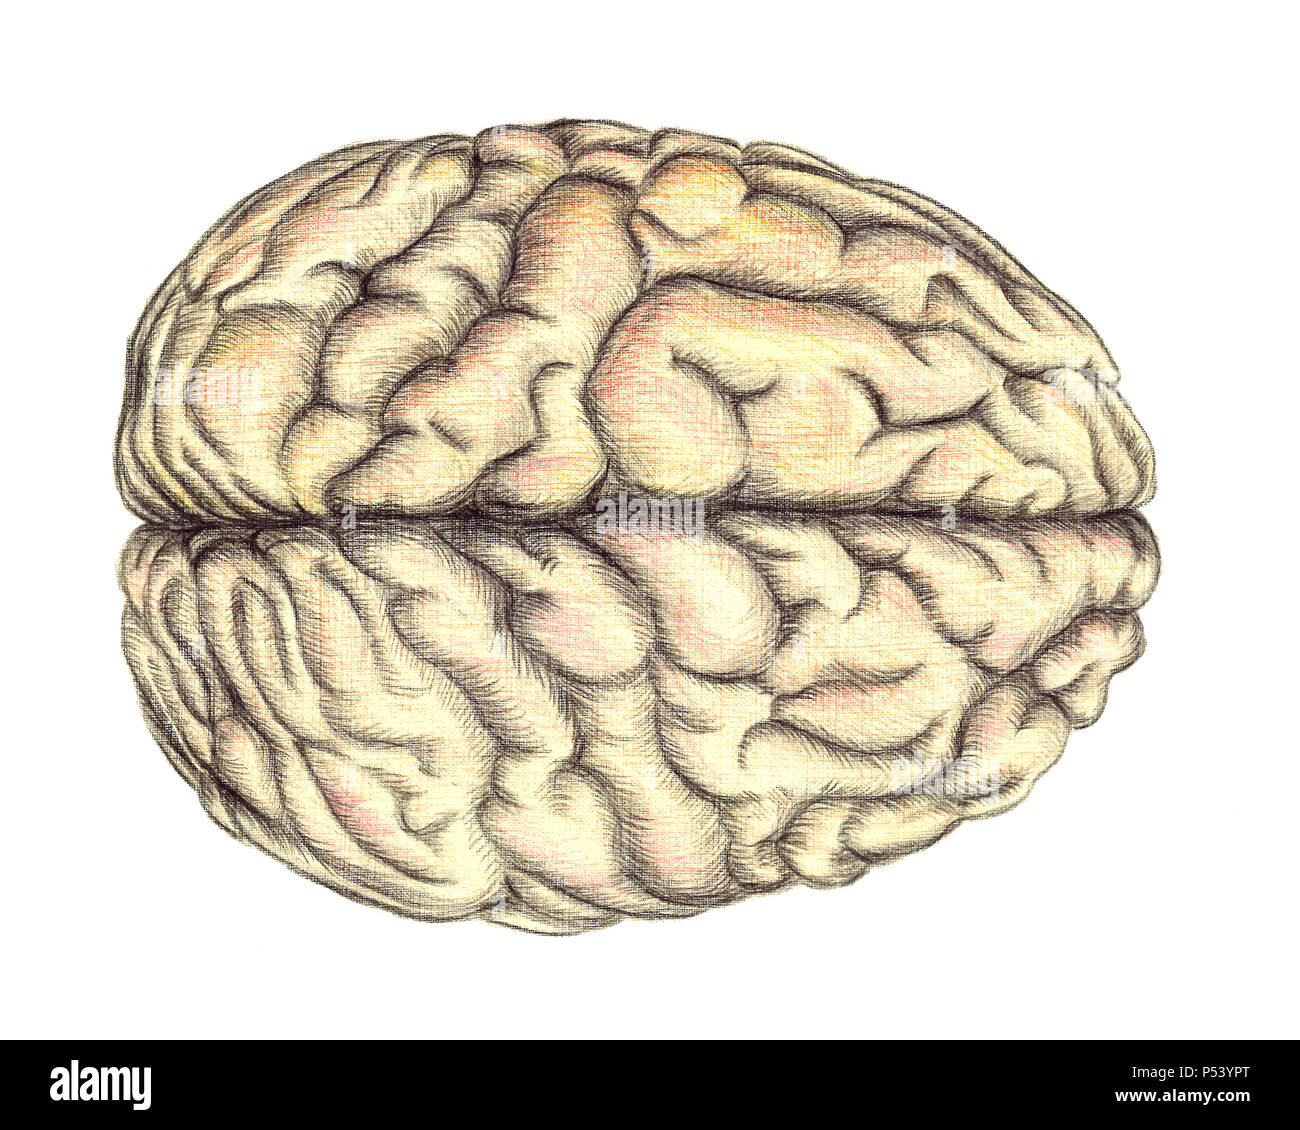 Human brain view from above, hand drawn medical illustration, color pencils drawing with imitation of lithography - Stock Image